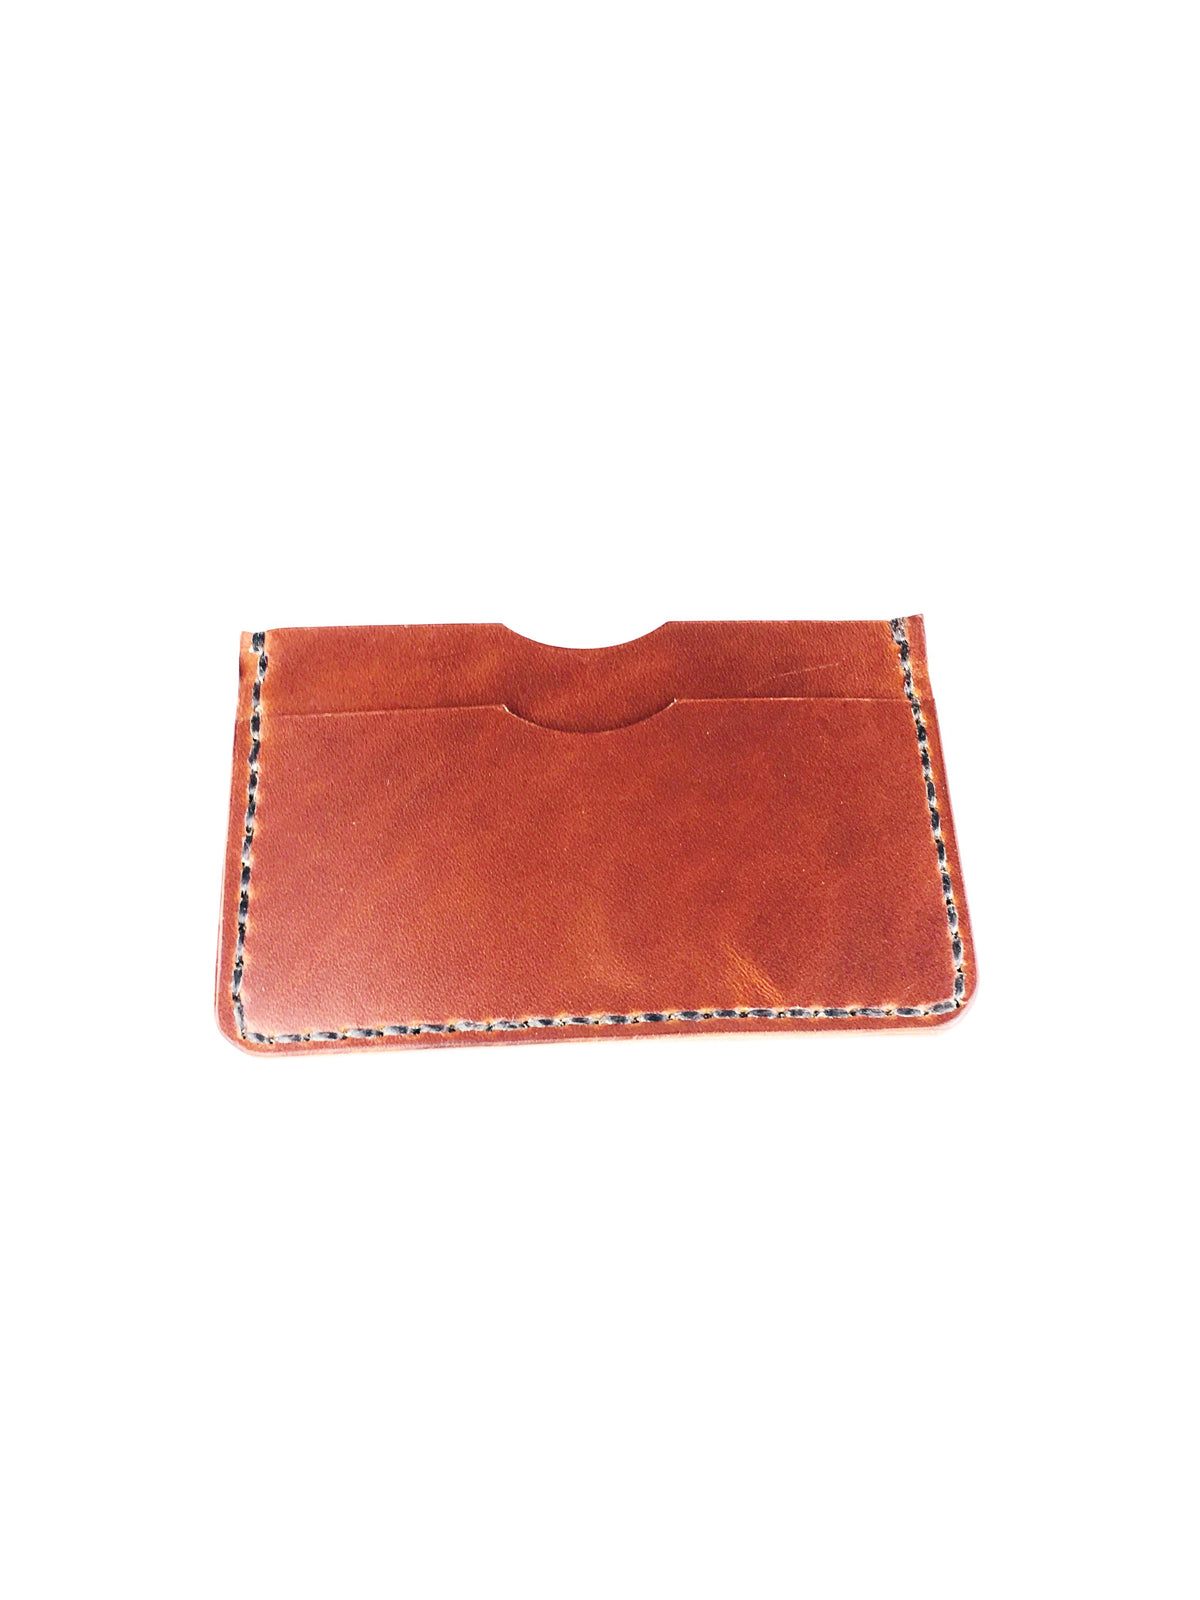 H+B  SLIM CARD WALLET - BURNT UMBER LEATHER WALLET